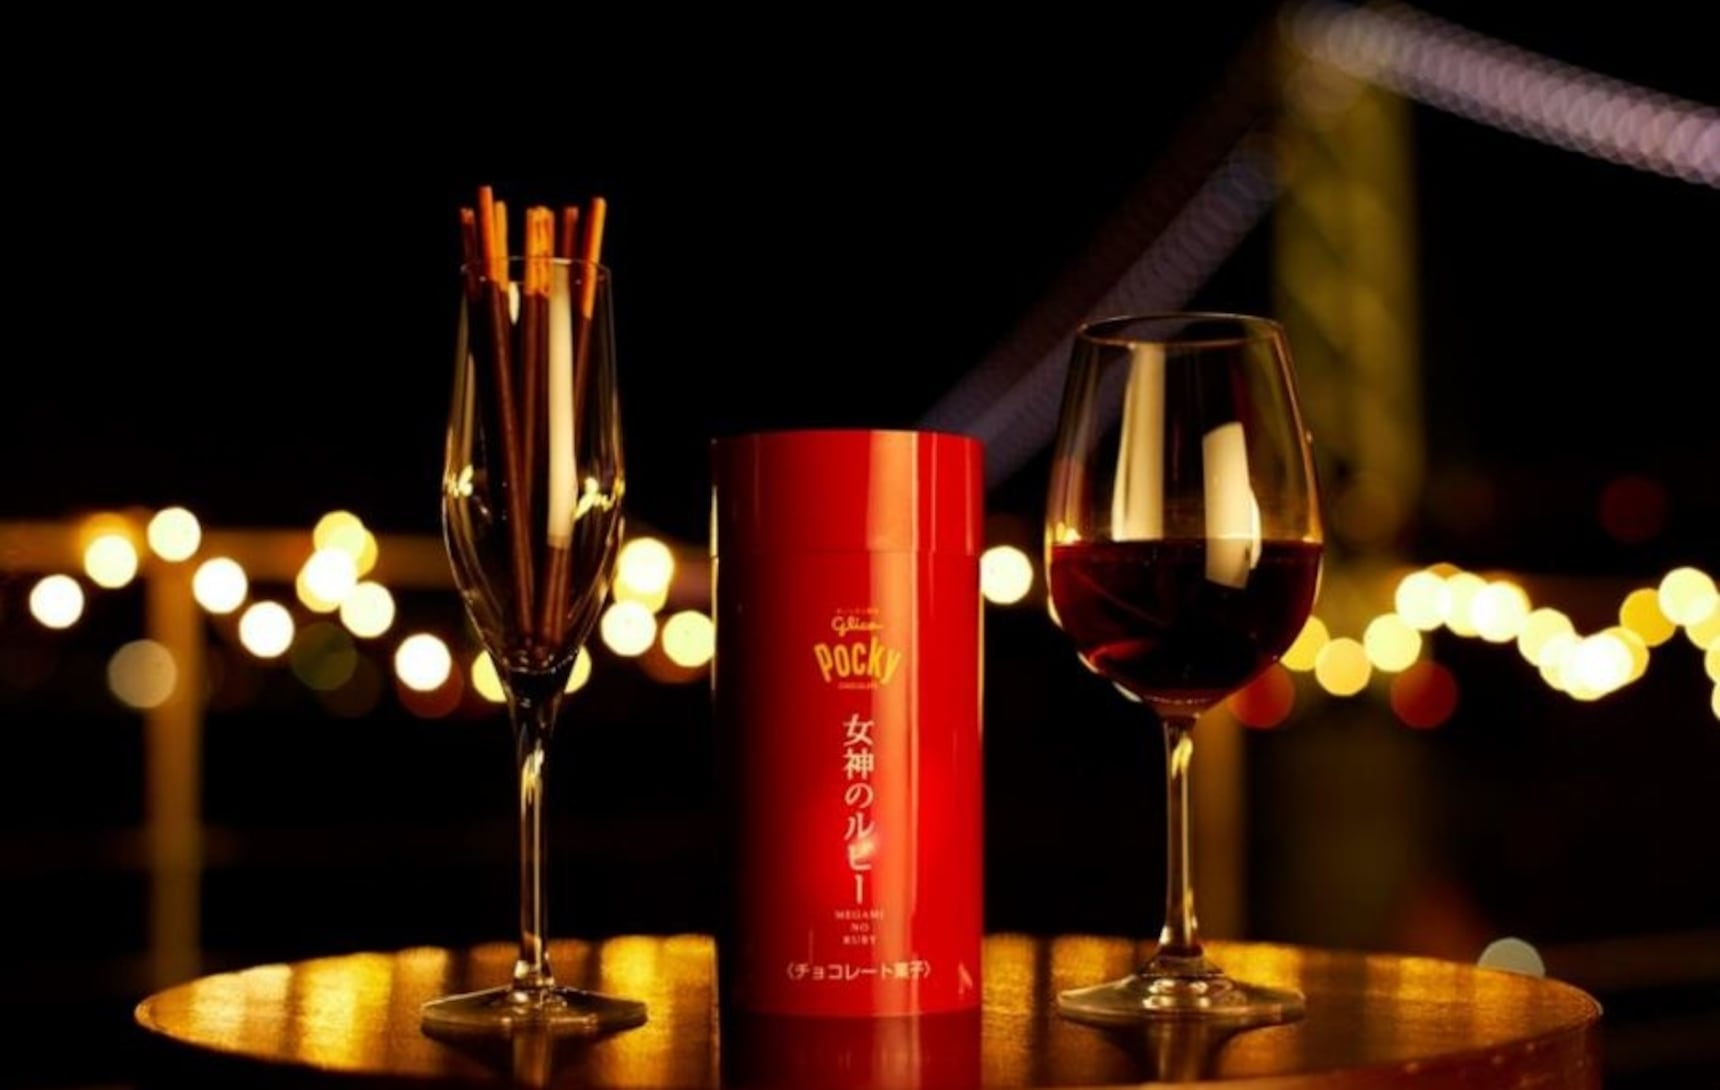 Break out the Wine: Pocky Just Got Classy!